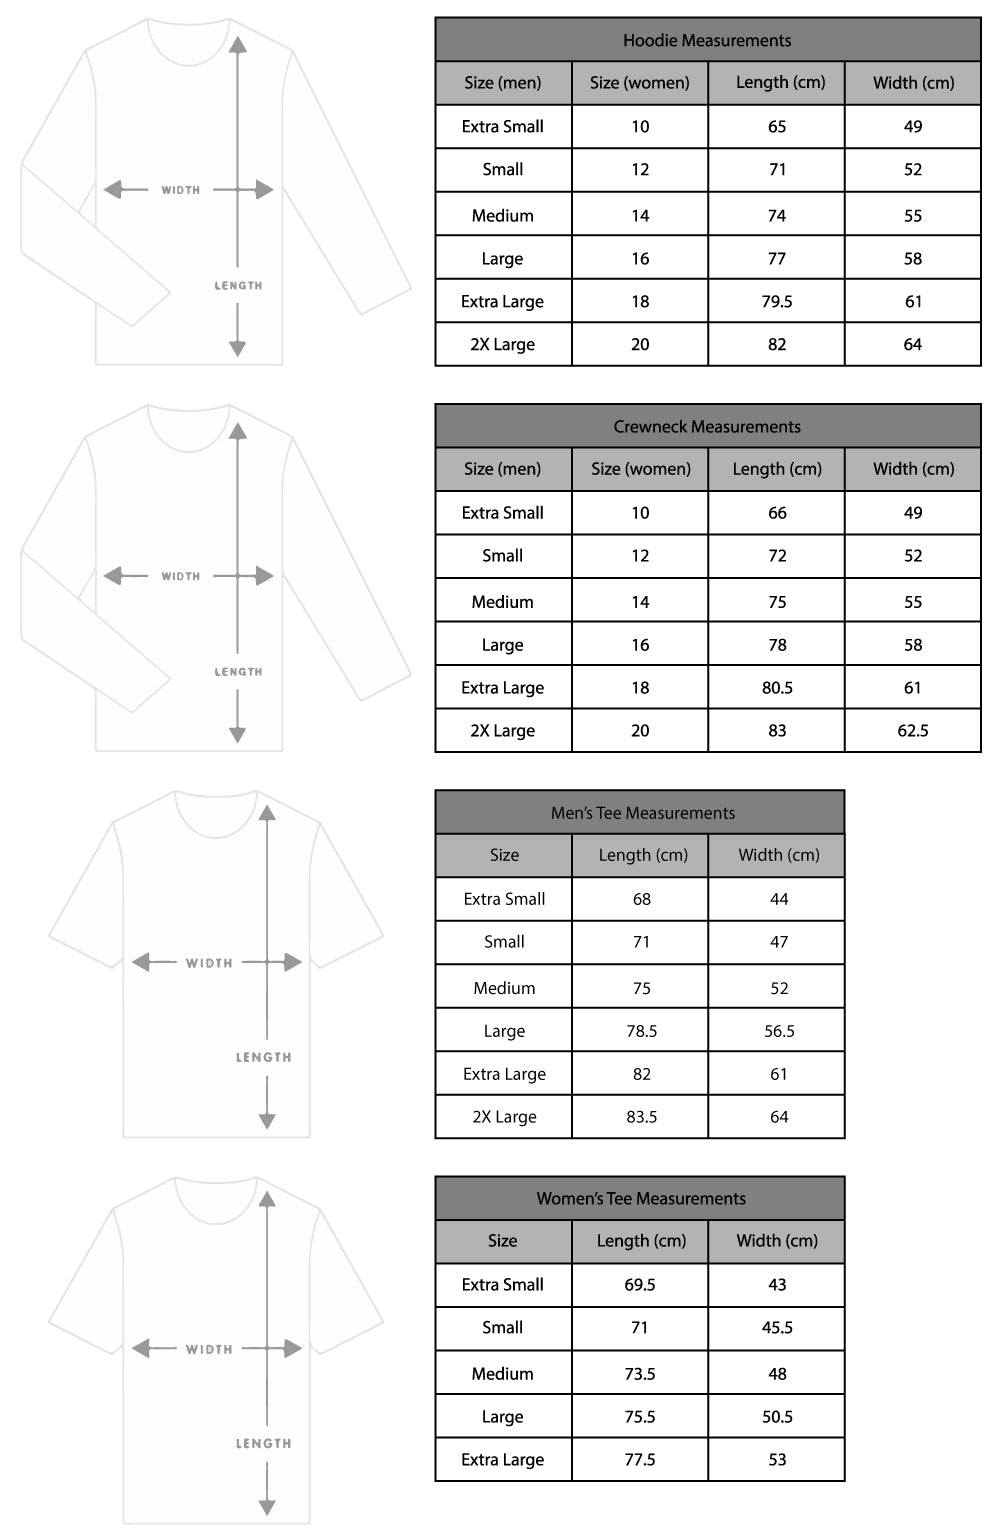 Sprngll mens & women's measurements for tees, hoodies and crewnecks